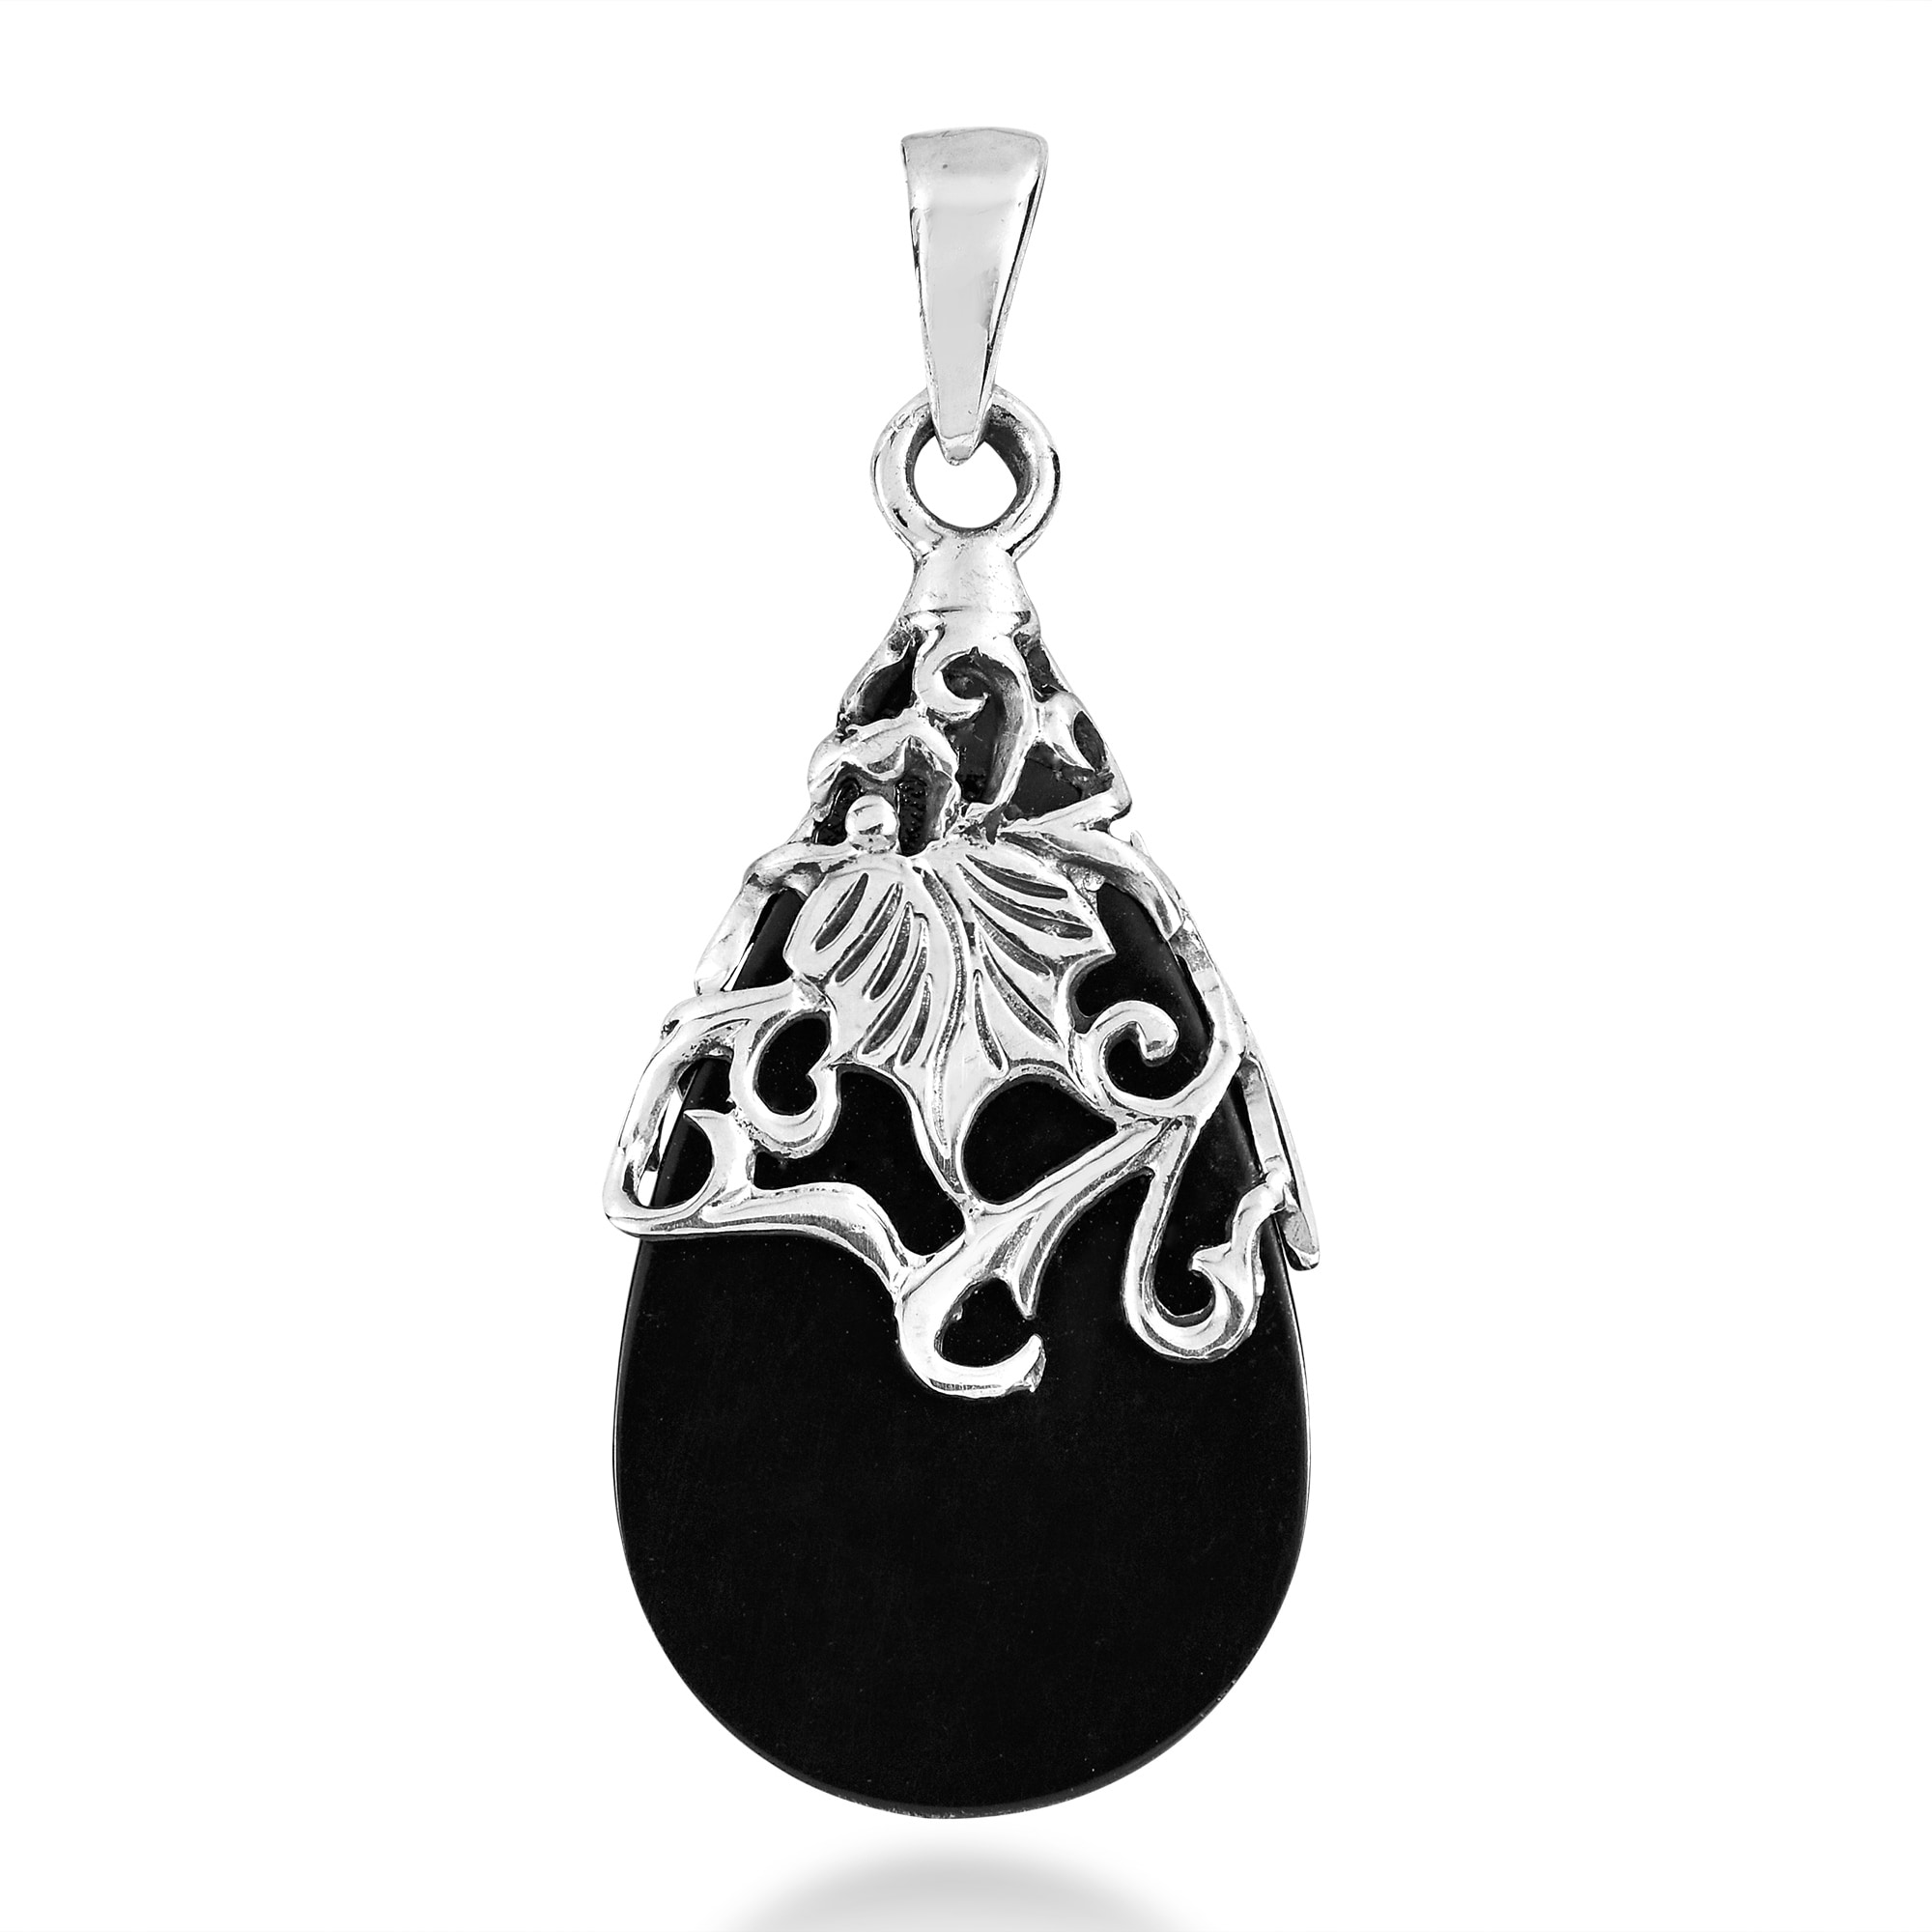 pendants handmade silver pp kabbalah plain aeravida products details flower of sterling pendant life product ball